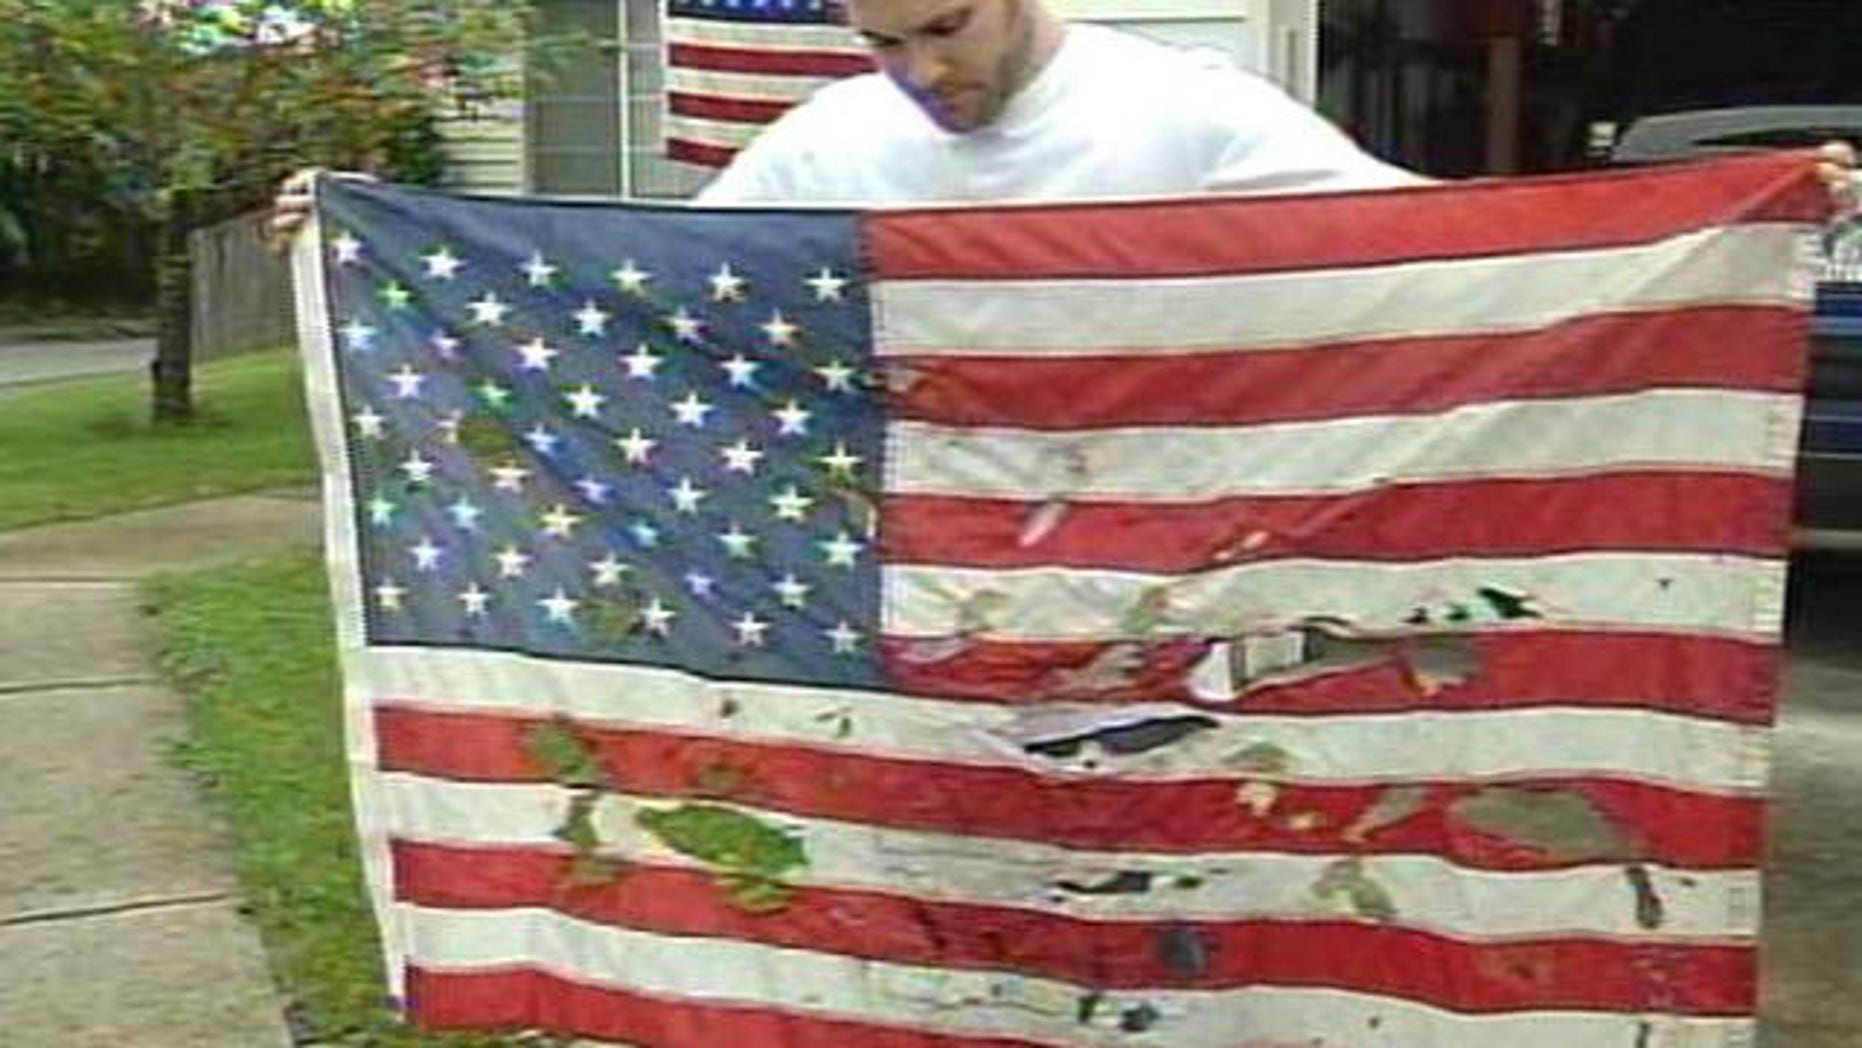 Christian Ashby, of Portland, Ore., holds an American flag that was vandalized outside of his home sometime late Saturday or early Sunday.